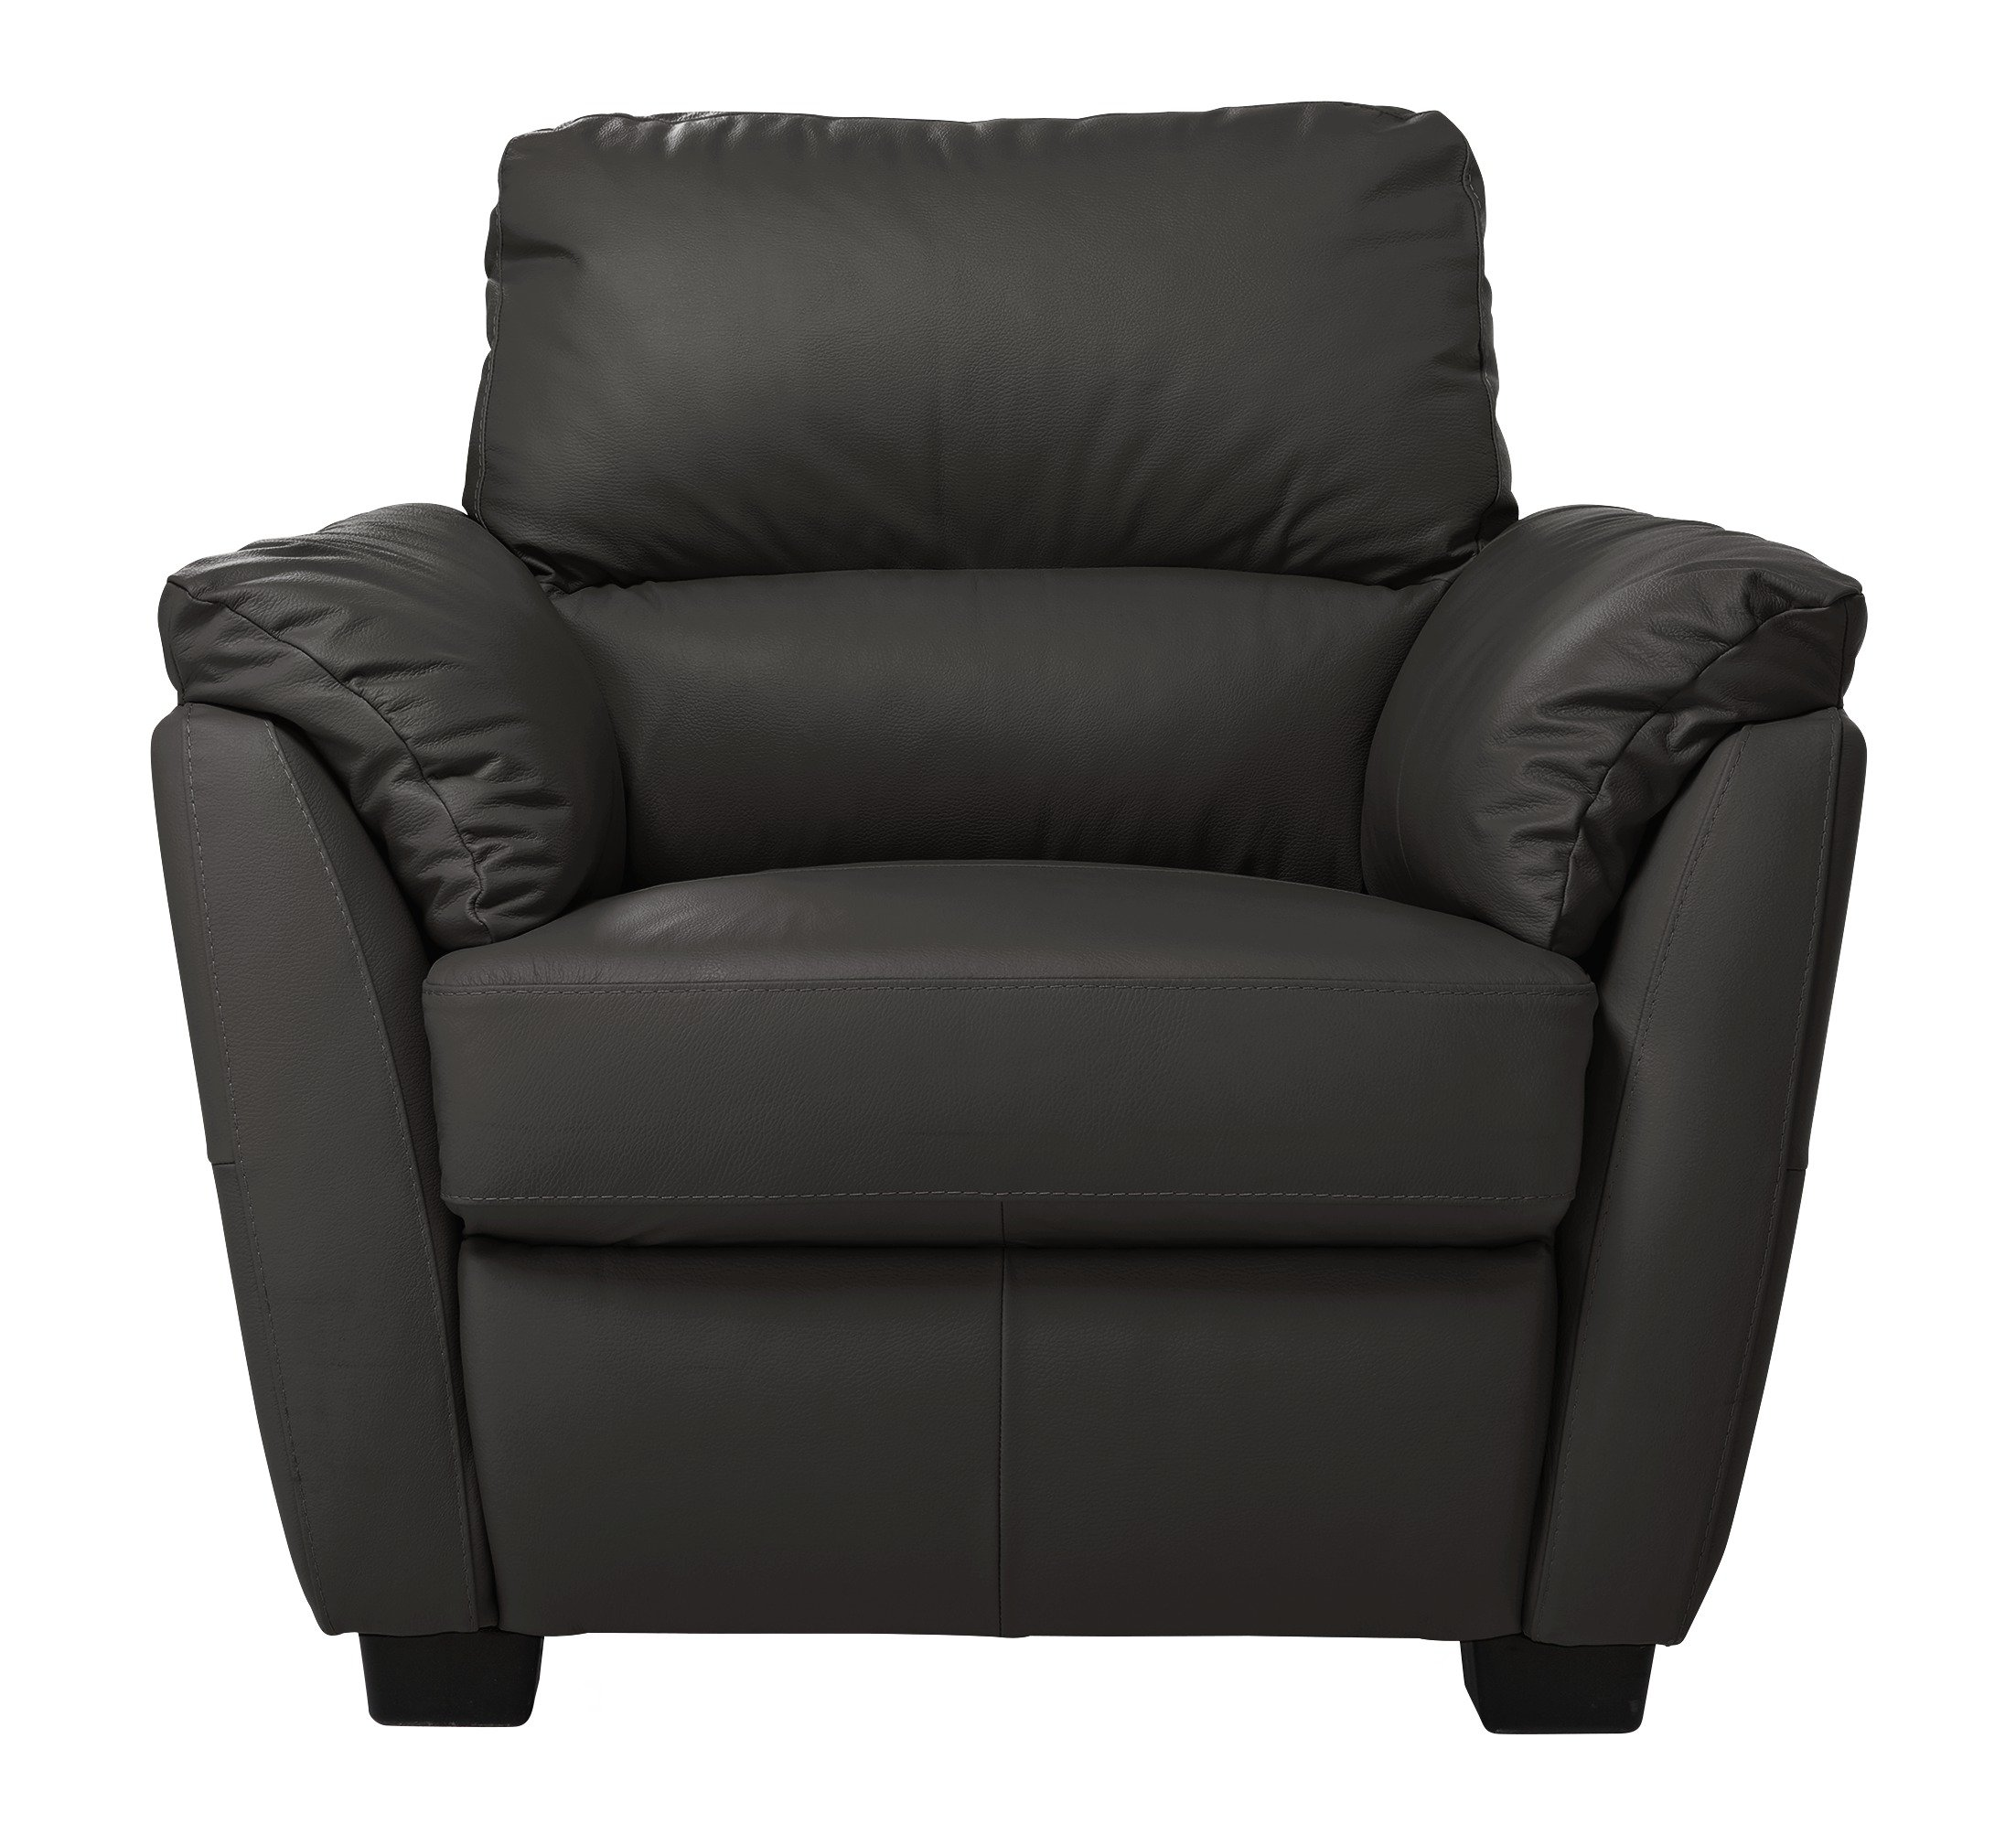 Argos Home Trieste Leather Armchair - Black